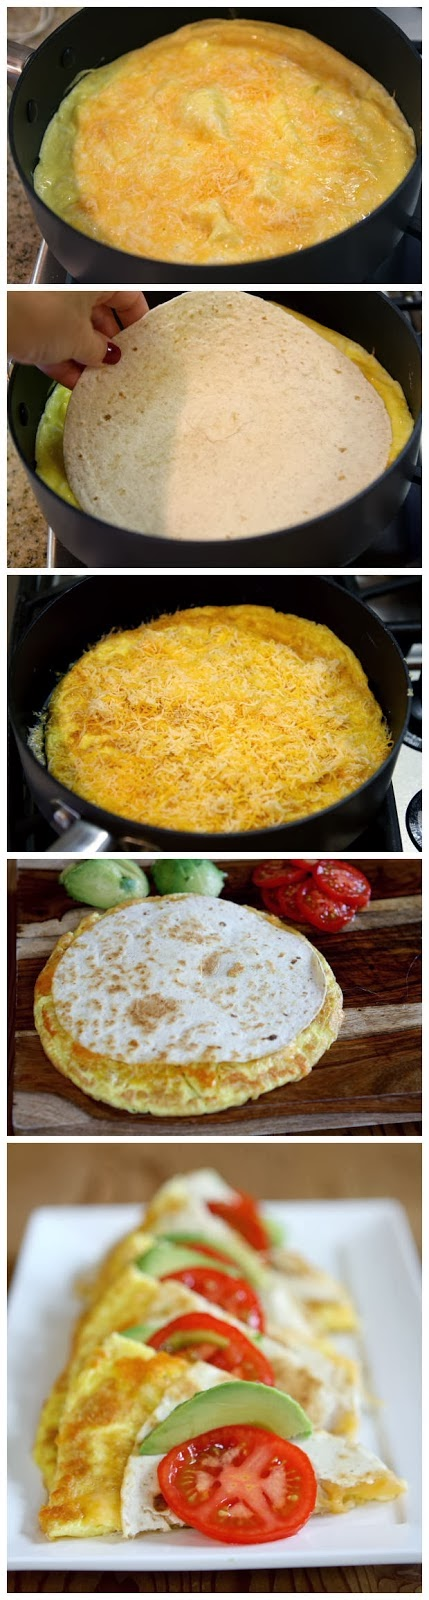 #Recipe : breakfast quesadillas